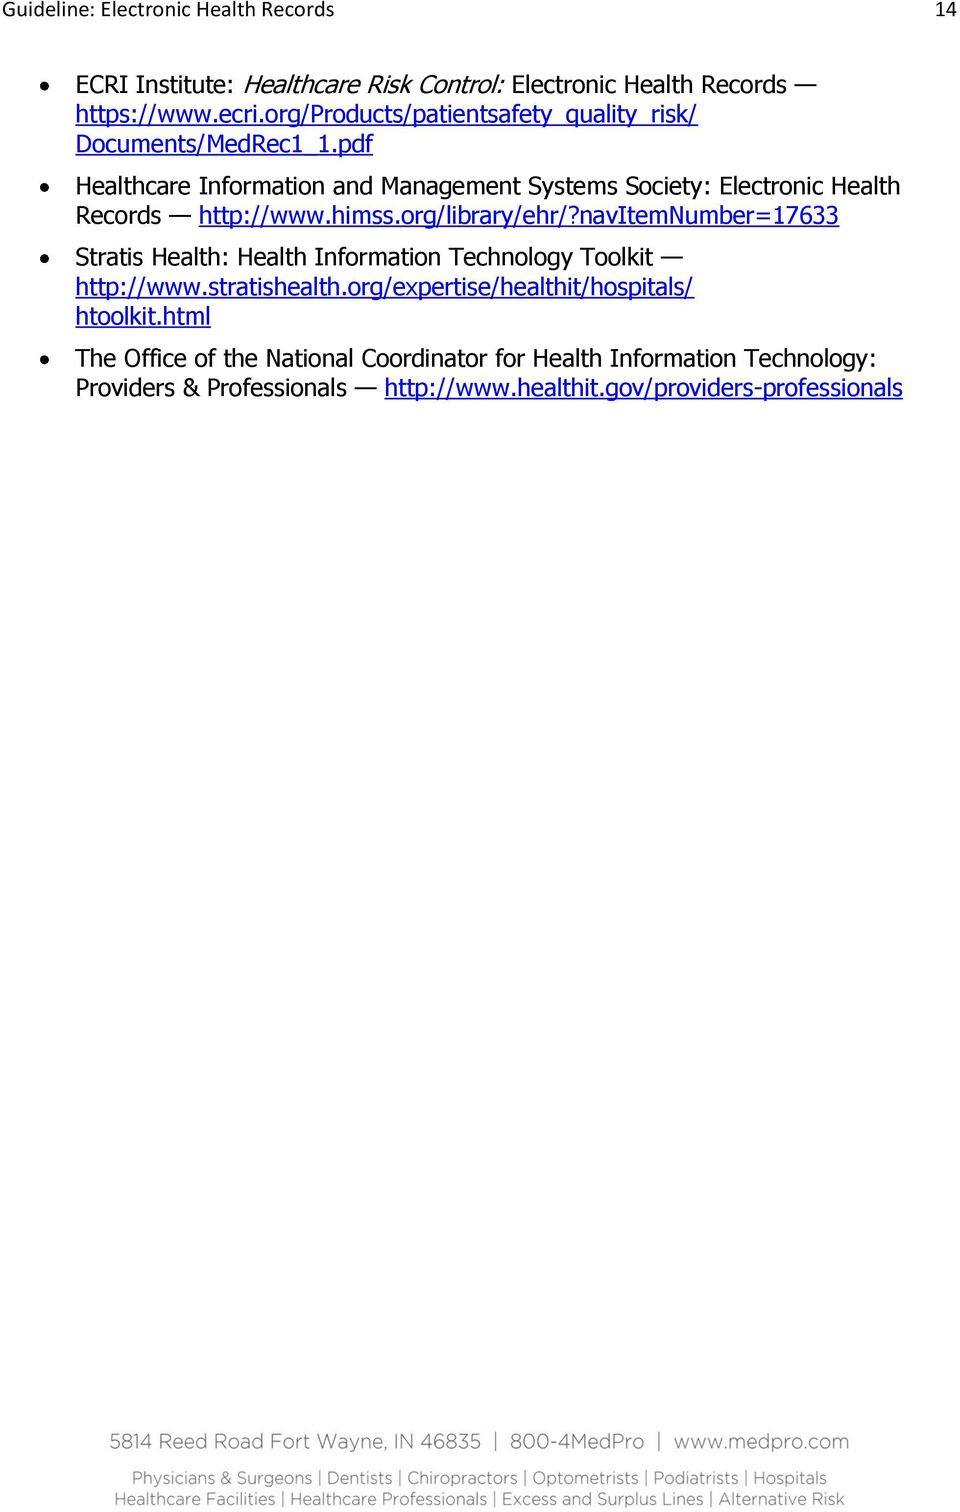 pdf Healthcare Information and Management Systems Society: Electronic Health Records http://www.himss.org/library/ehr/?